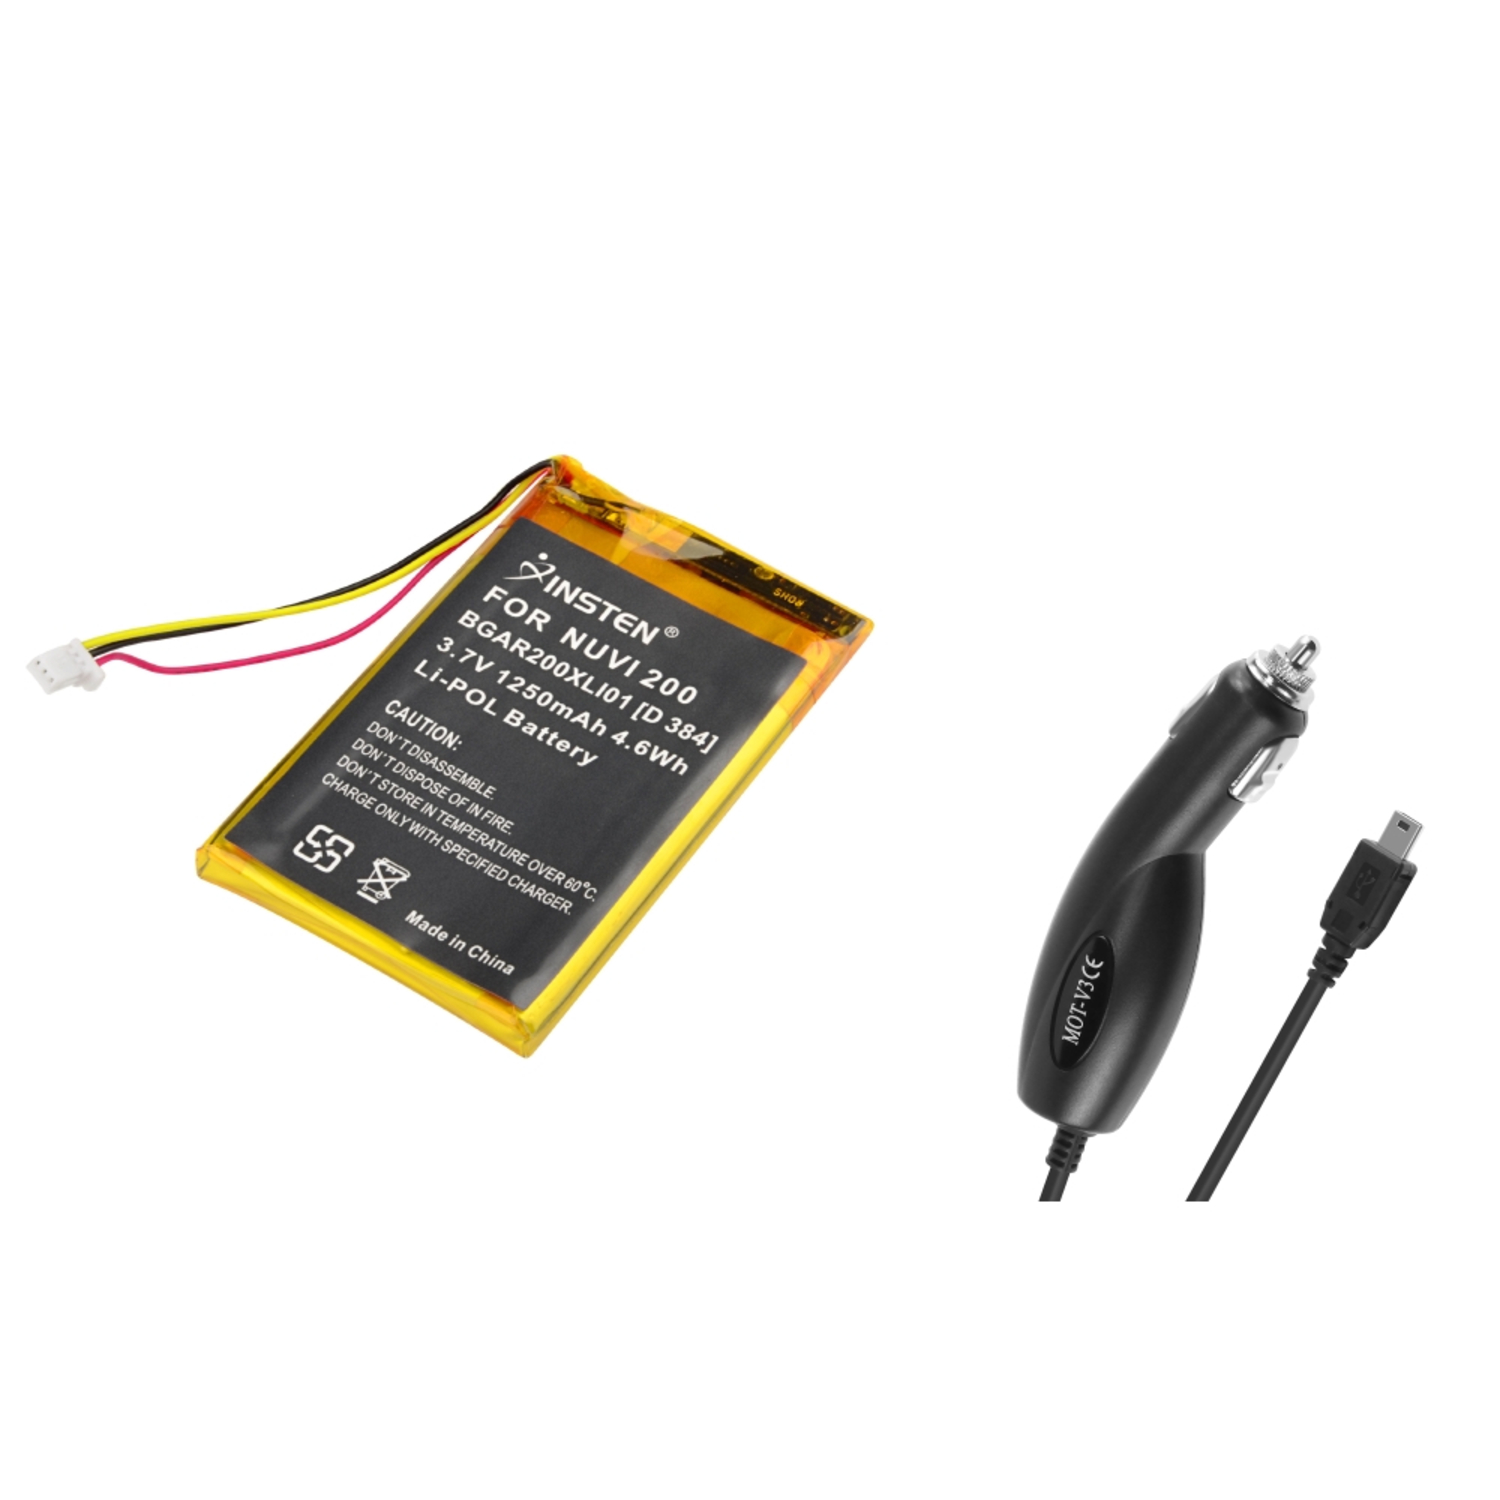 Insten 1250mAh li-ion Battery Pack + Car Charger For Garmin Nuvi 200 200W 205 205T 250 260 270 710 750 760 770 780